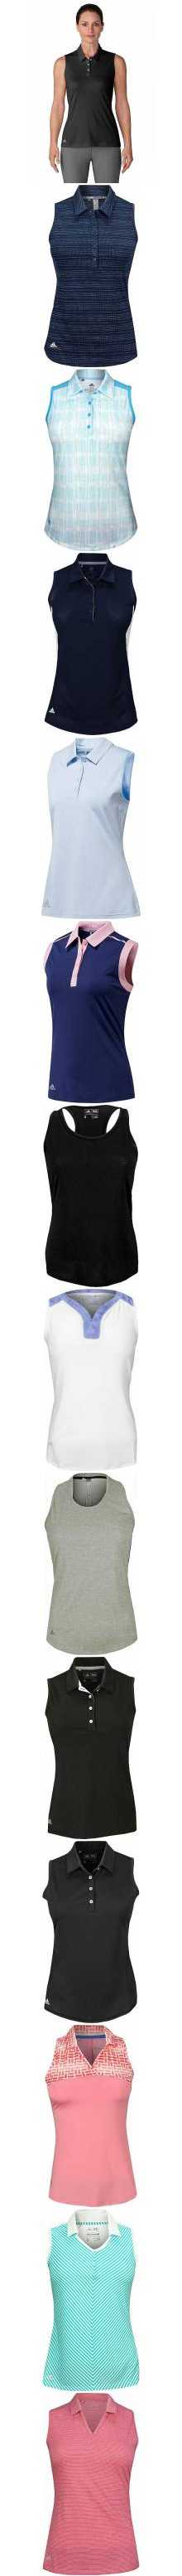 c402ff61d6082d Adidas Women s Ultimate 365 Printed Sleeveless Golf Shirts.  56.95. Women   Customize It. 1 color available